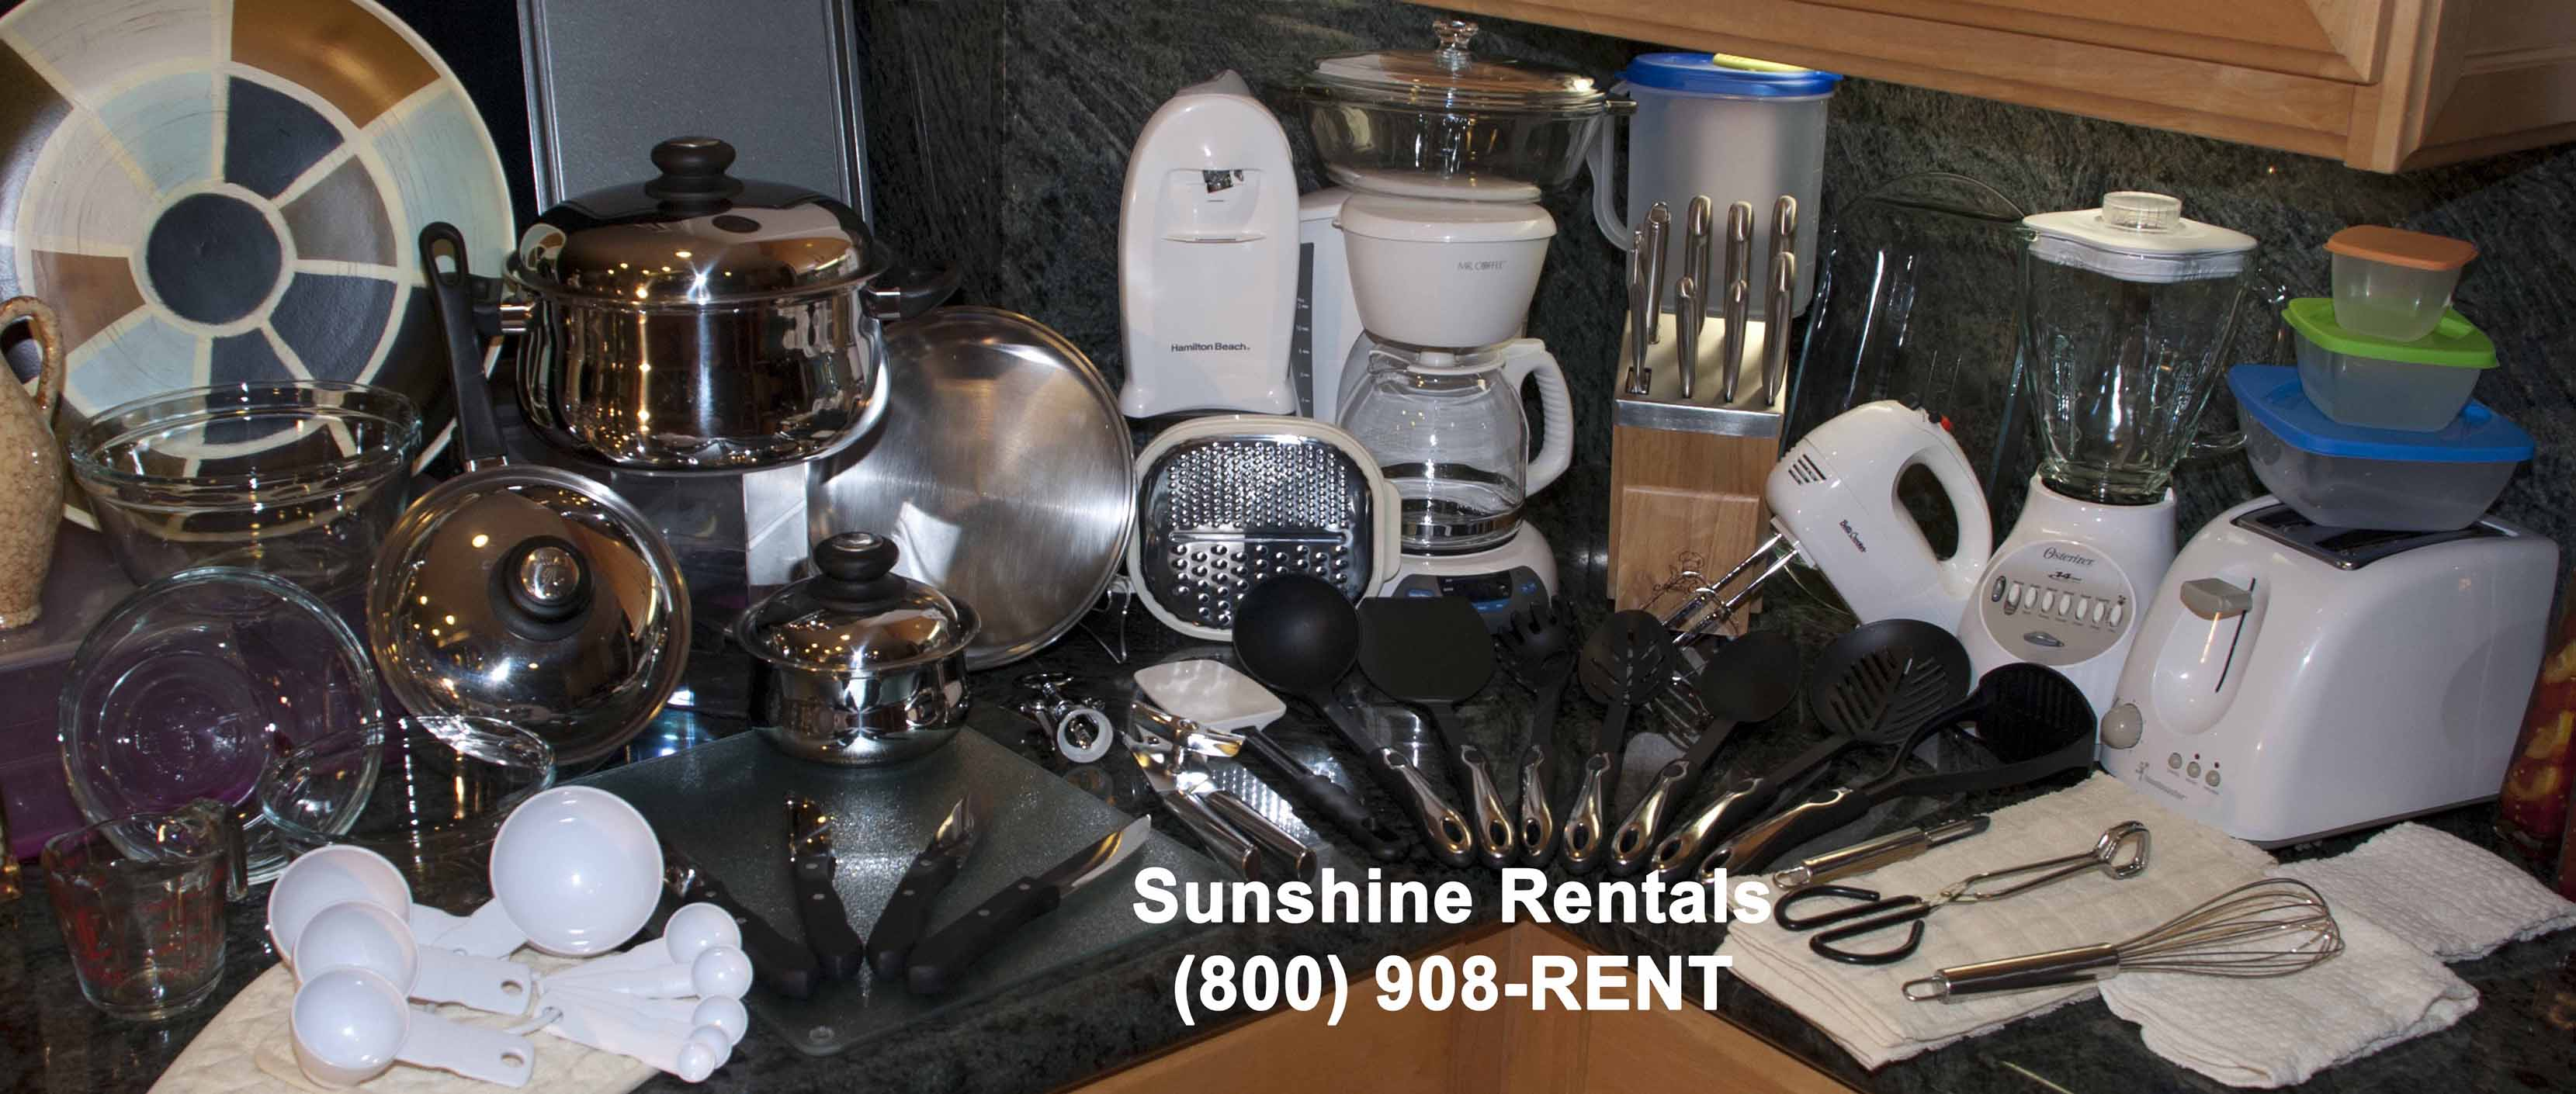 Sunshine Rentals Executive Kitchen